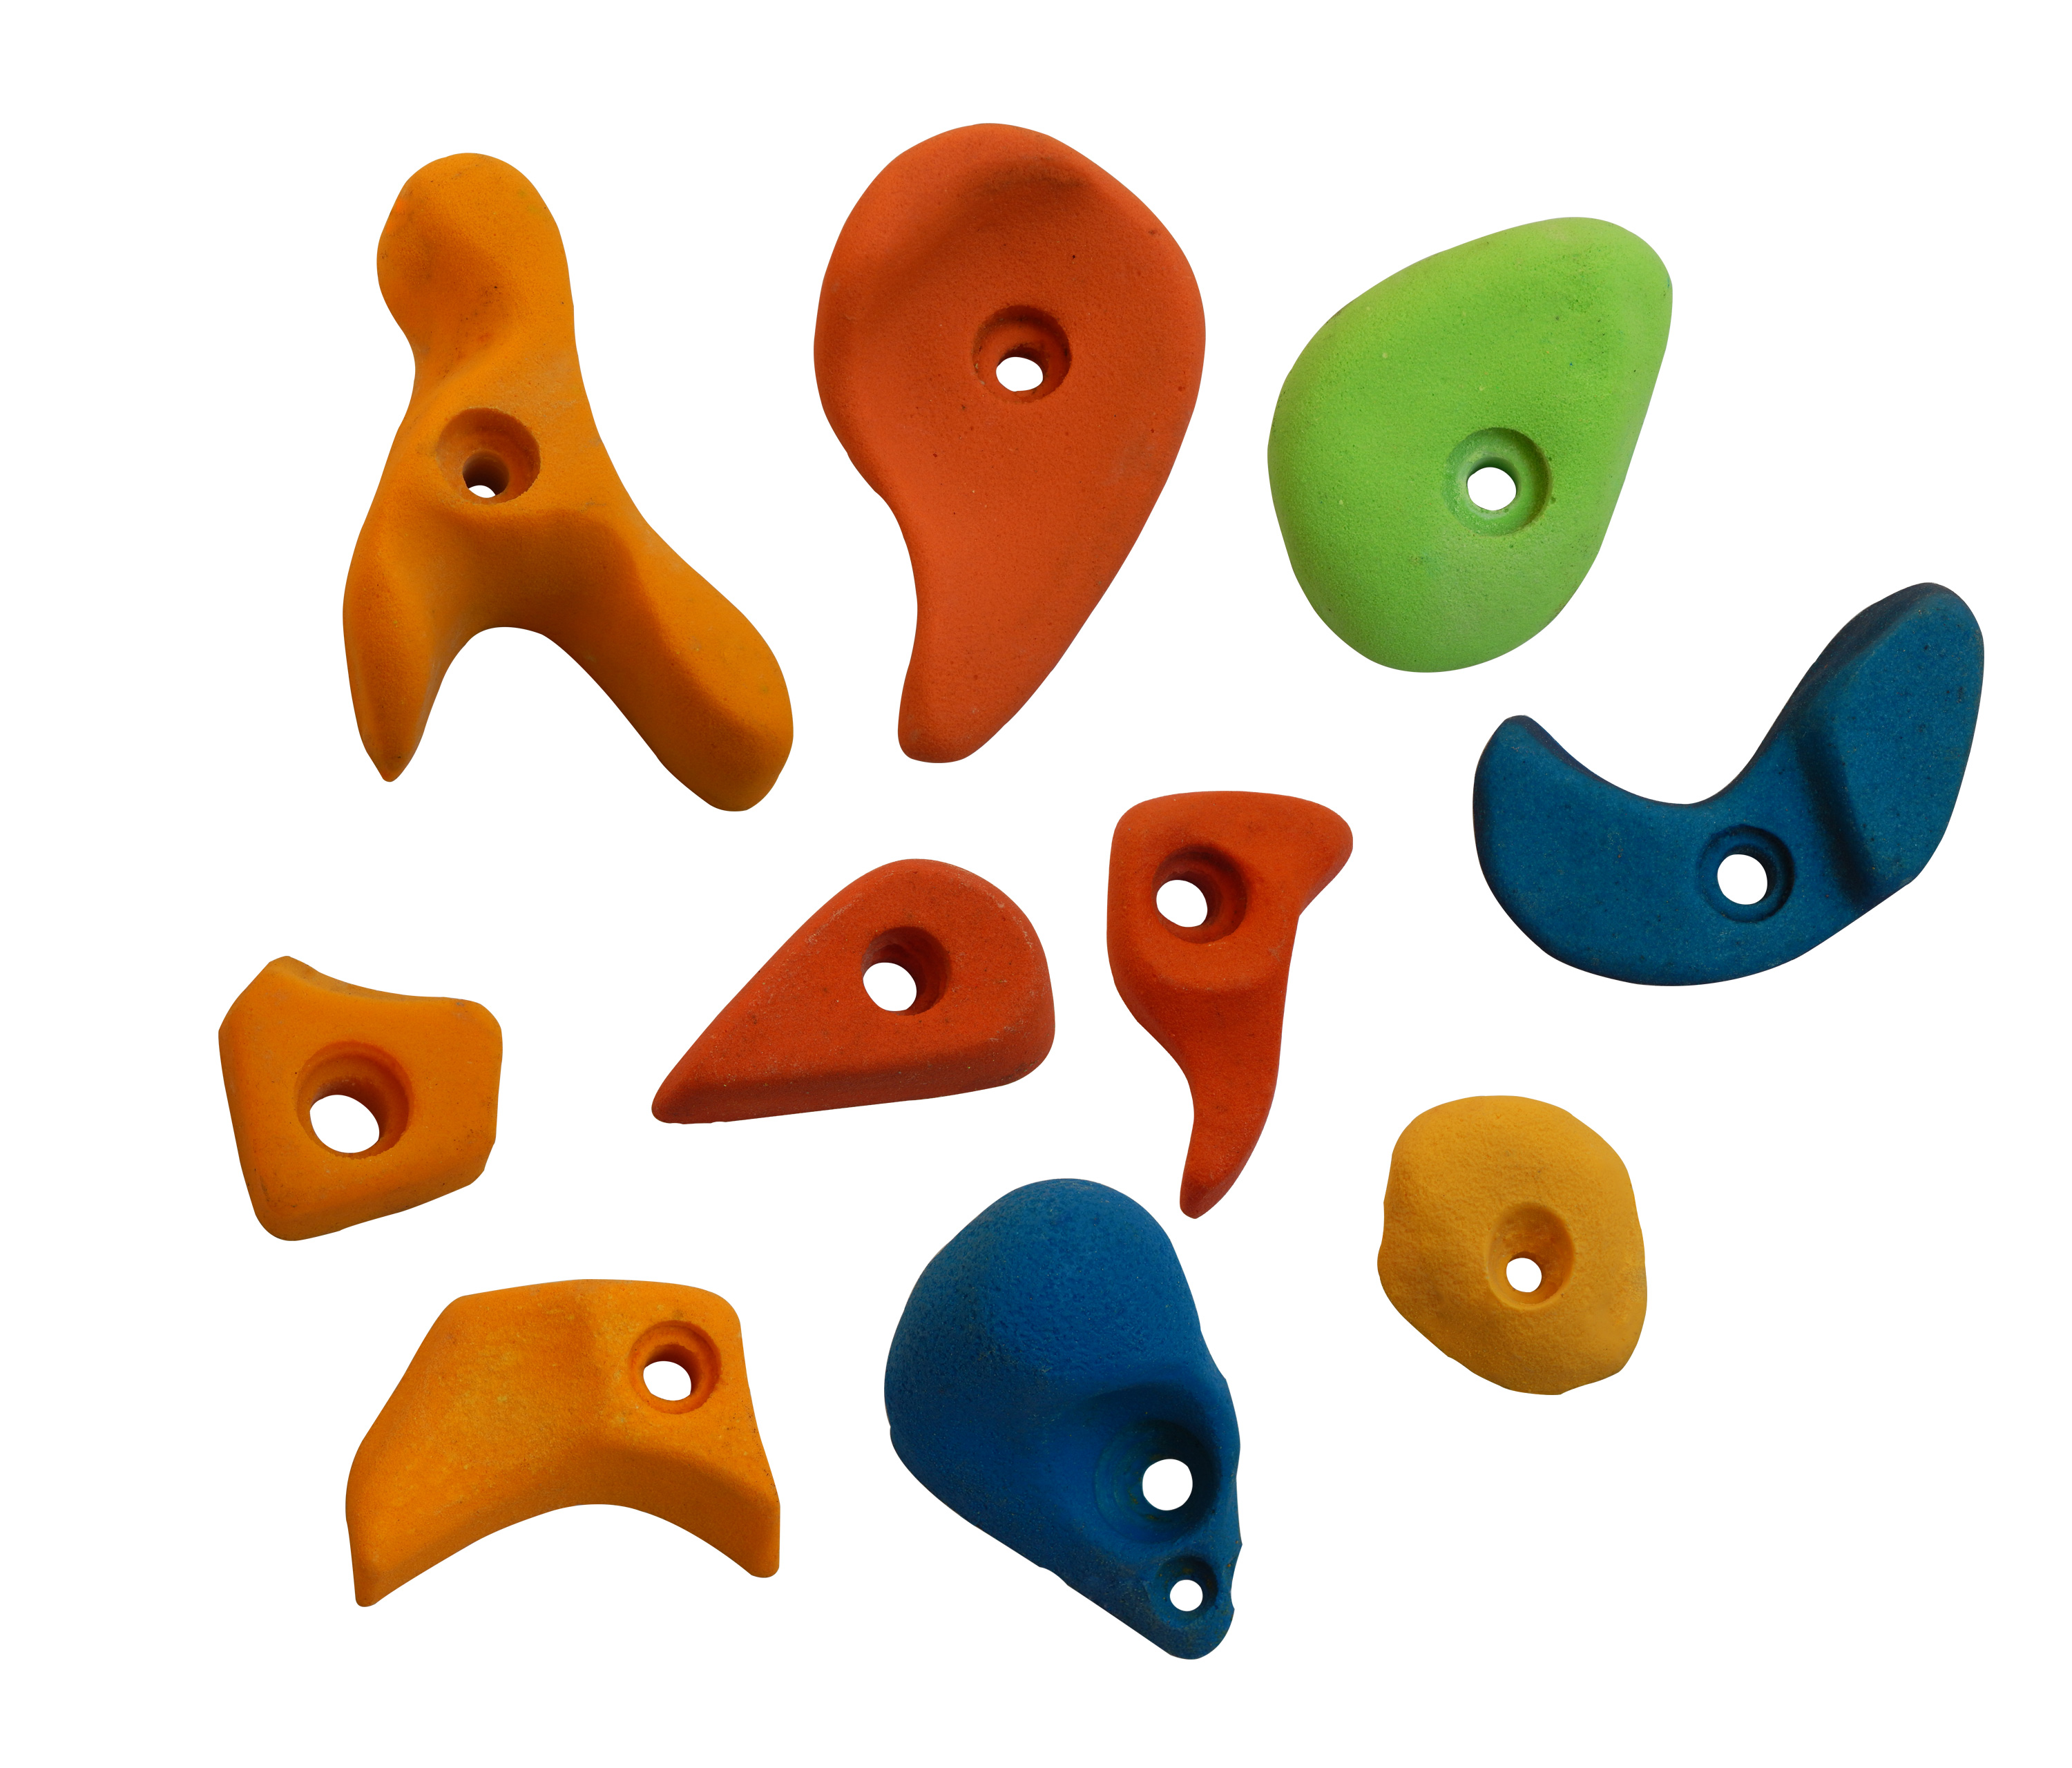 Mix Climbing Holds Manufacturers in Puducherry Territory